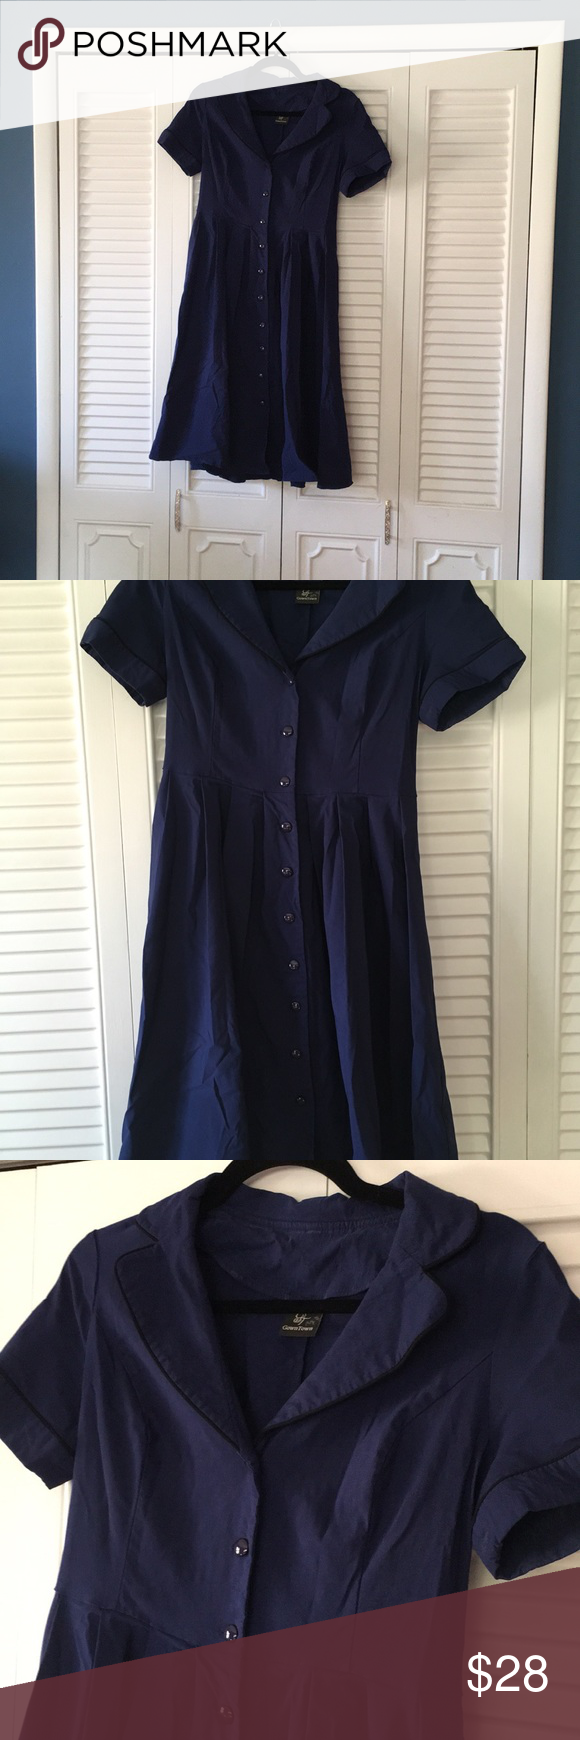 Navy retro waitress/workday dress Workday dress, Dresses